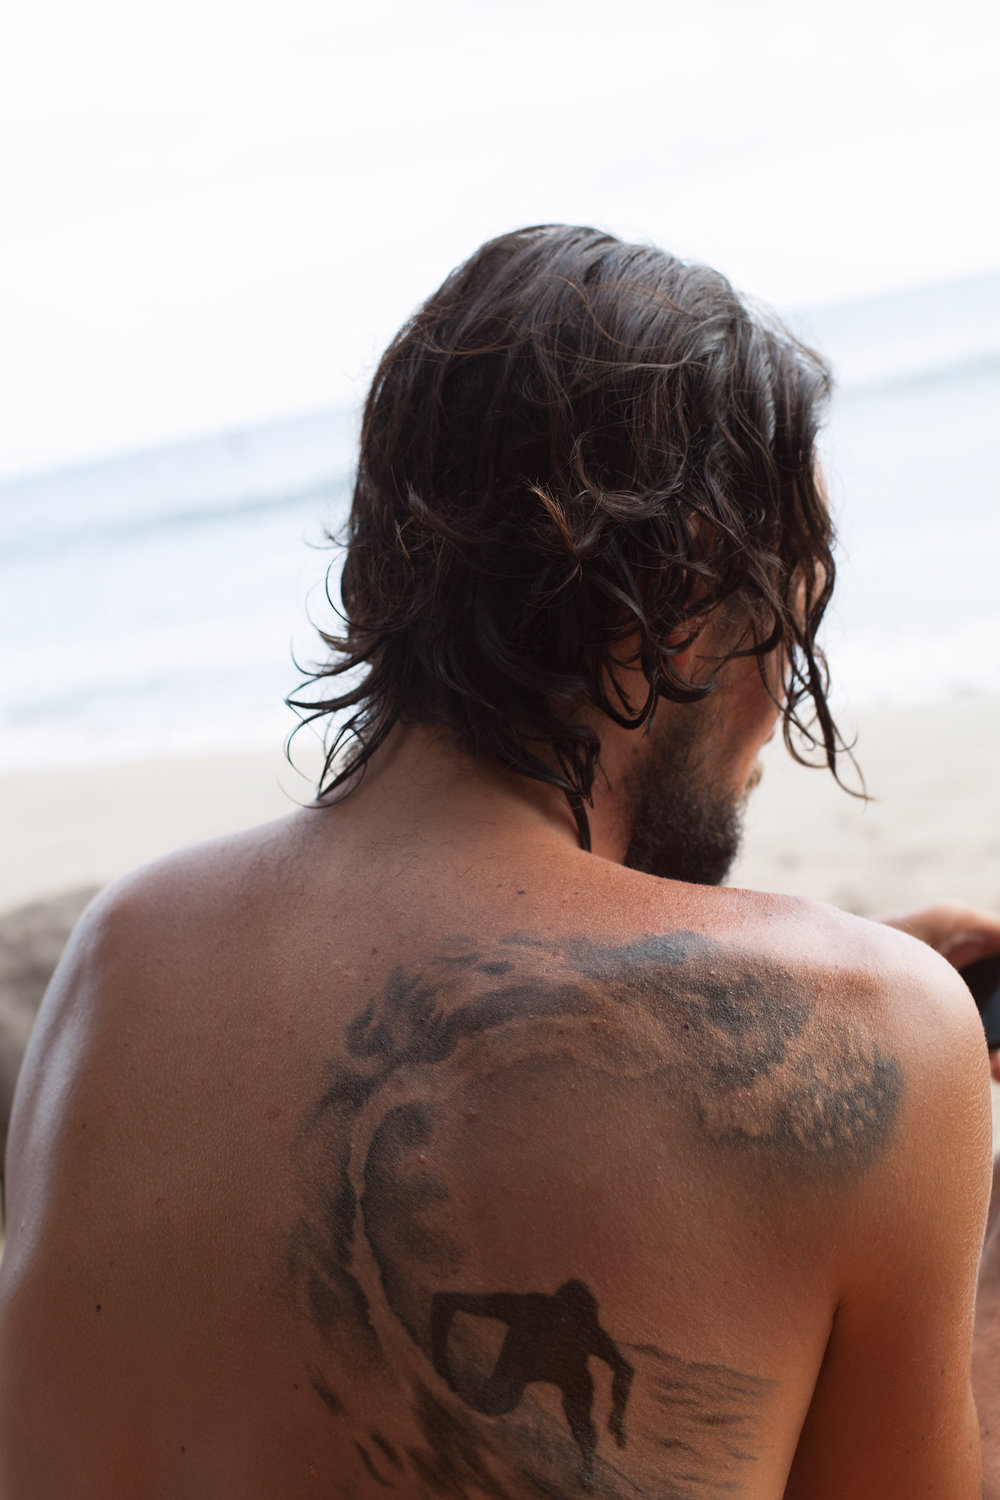 tattoo-surf-Maui-Hawaii-surfer.jpg